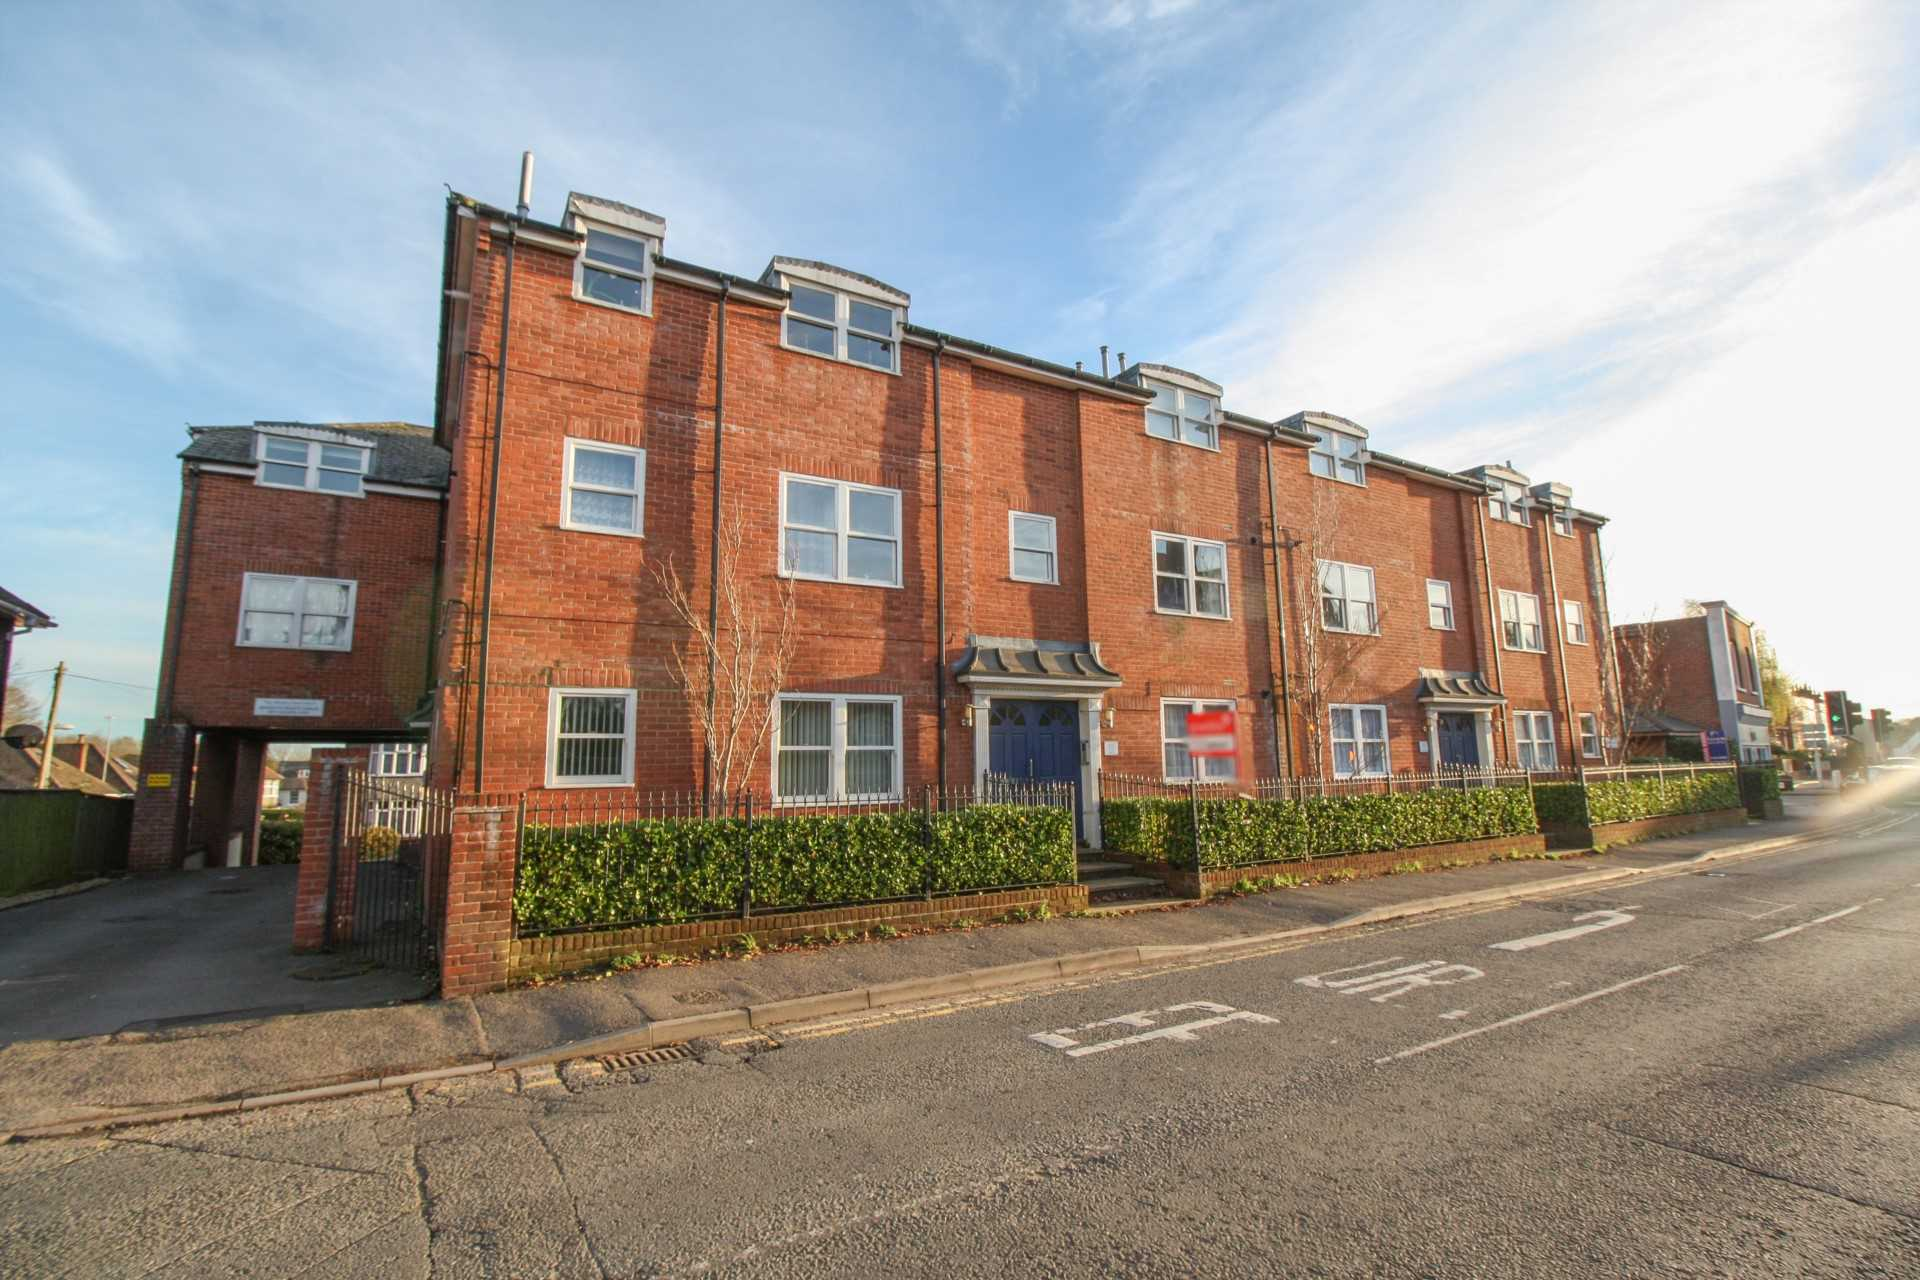 2 bed flat to rent in The Orkneys, Blandford Forum, Blandford Forum  - Property Image 1